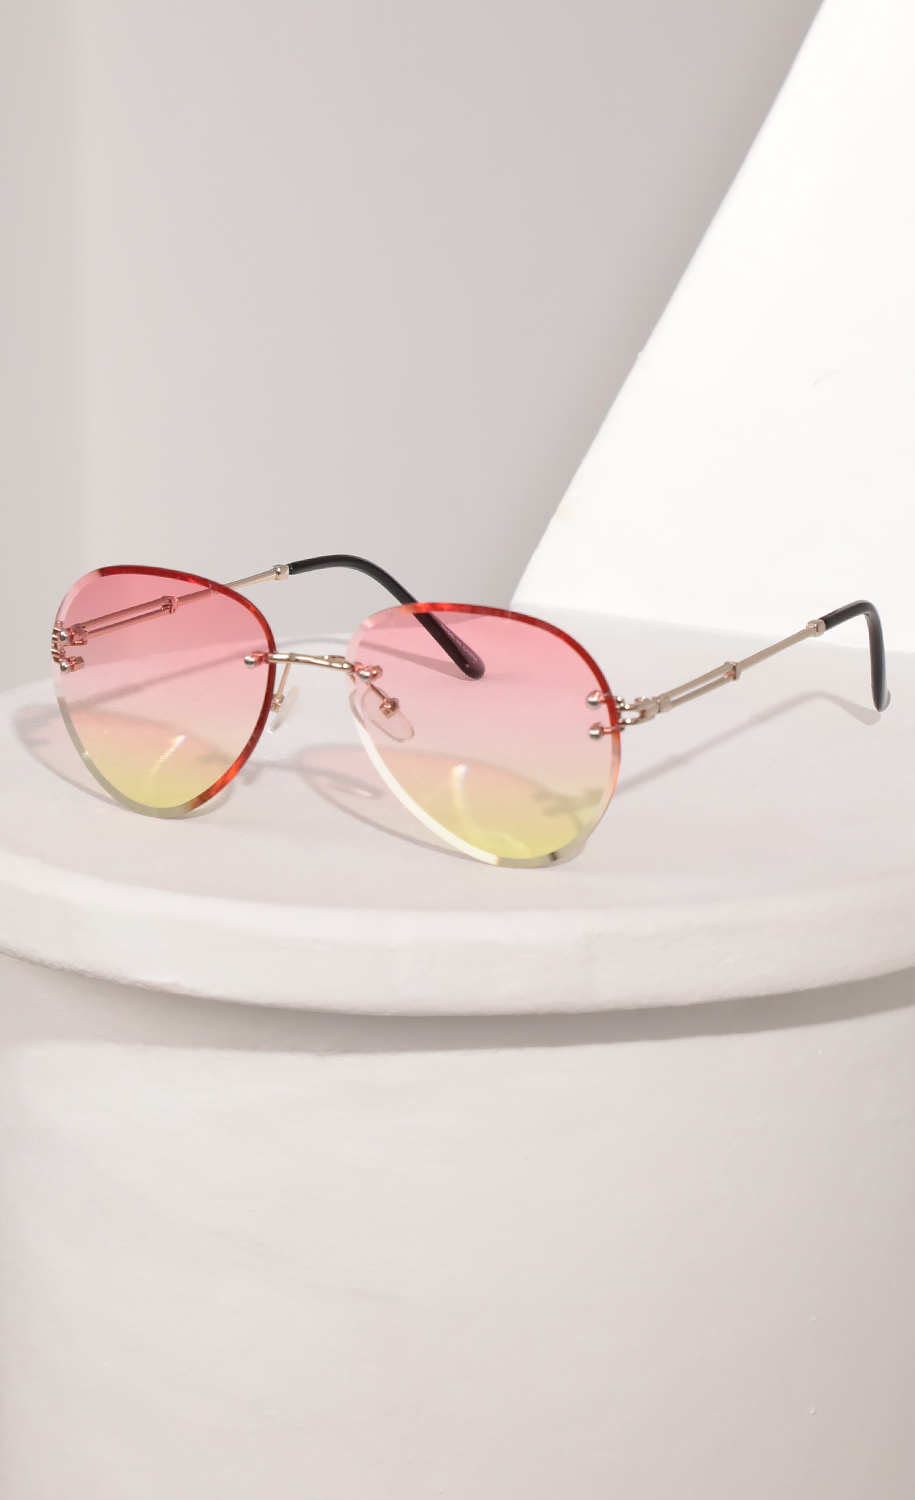 Rimless Aviator-Inspired Sunglasses in Pink Ombre